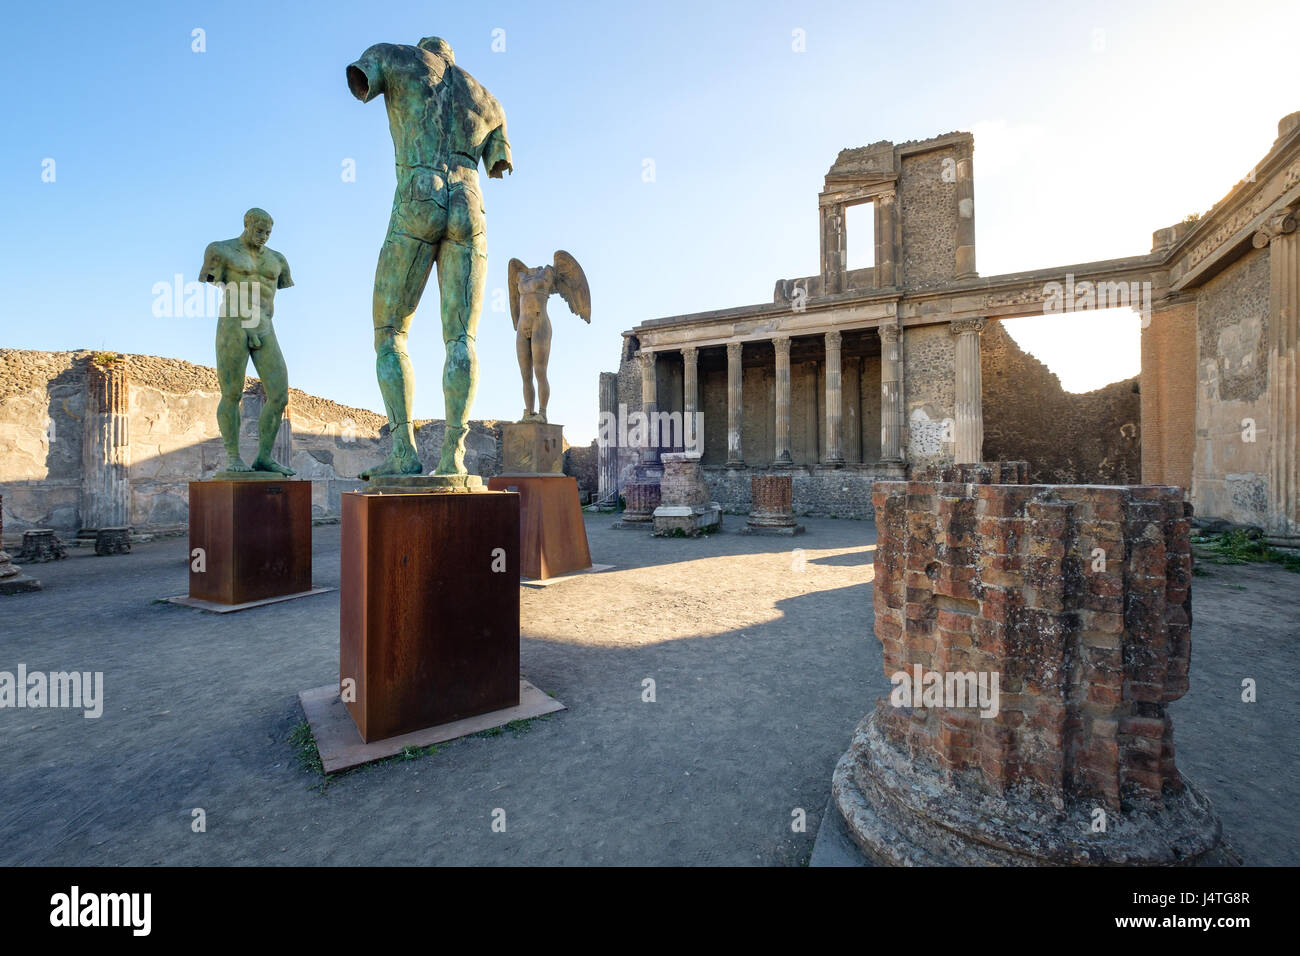 Scenic view of ruins and statues in ancient city of Pompeii, Italy - Stock Image